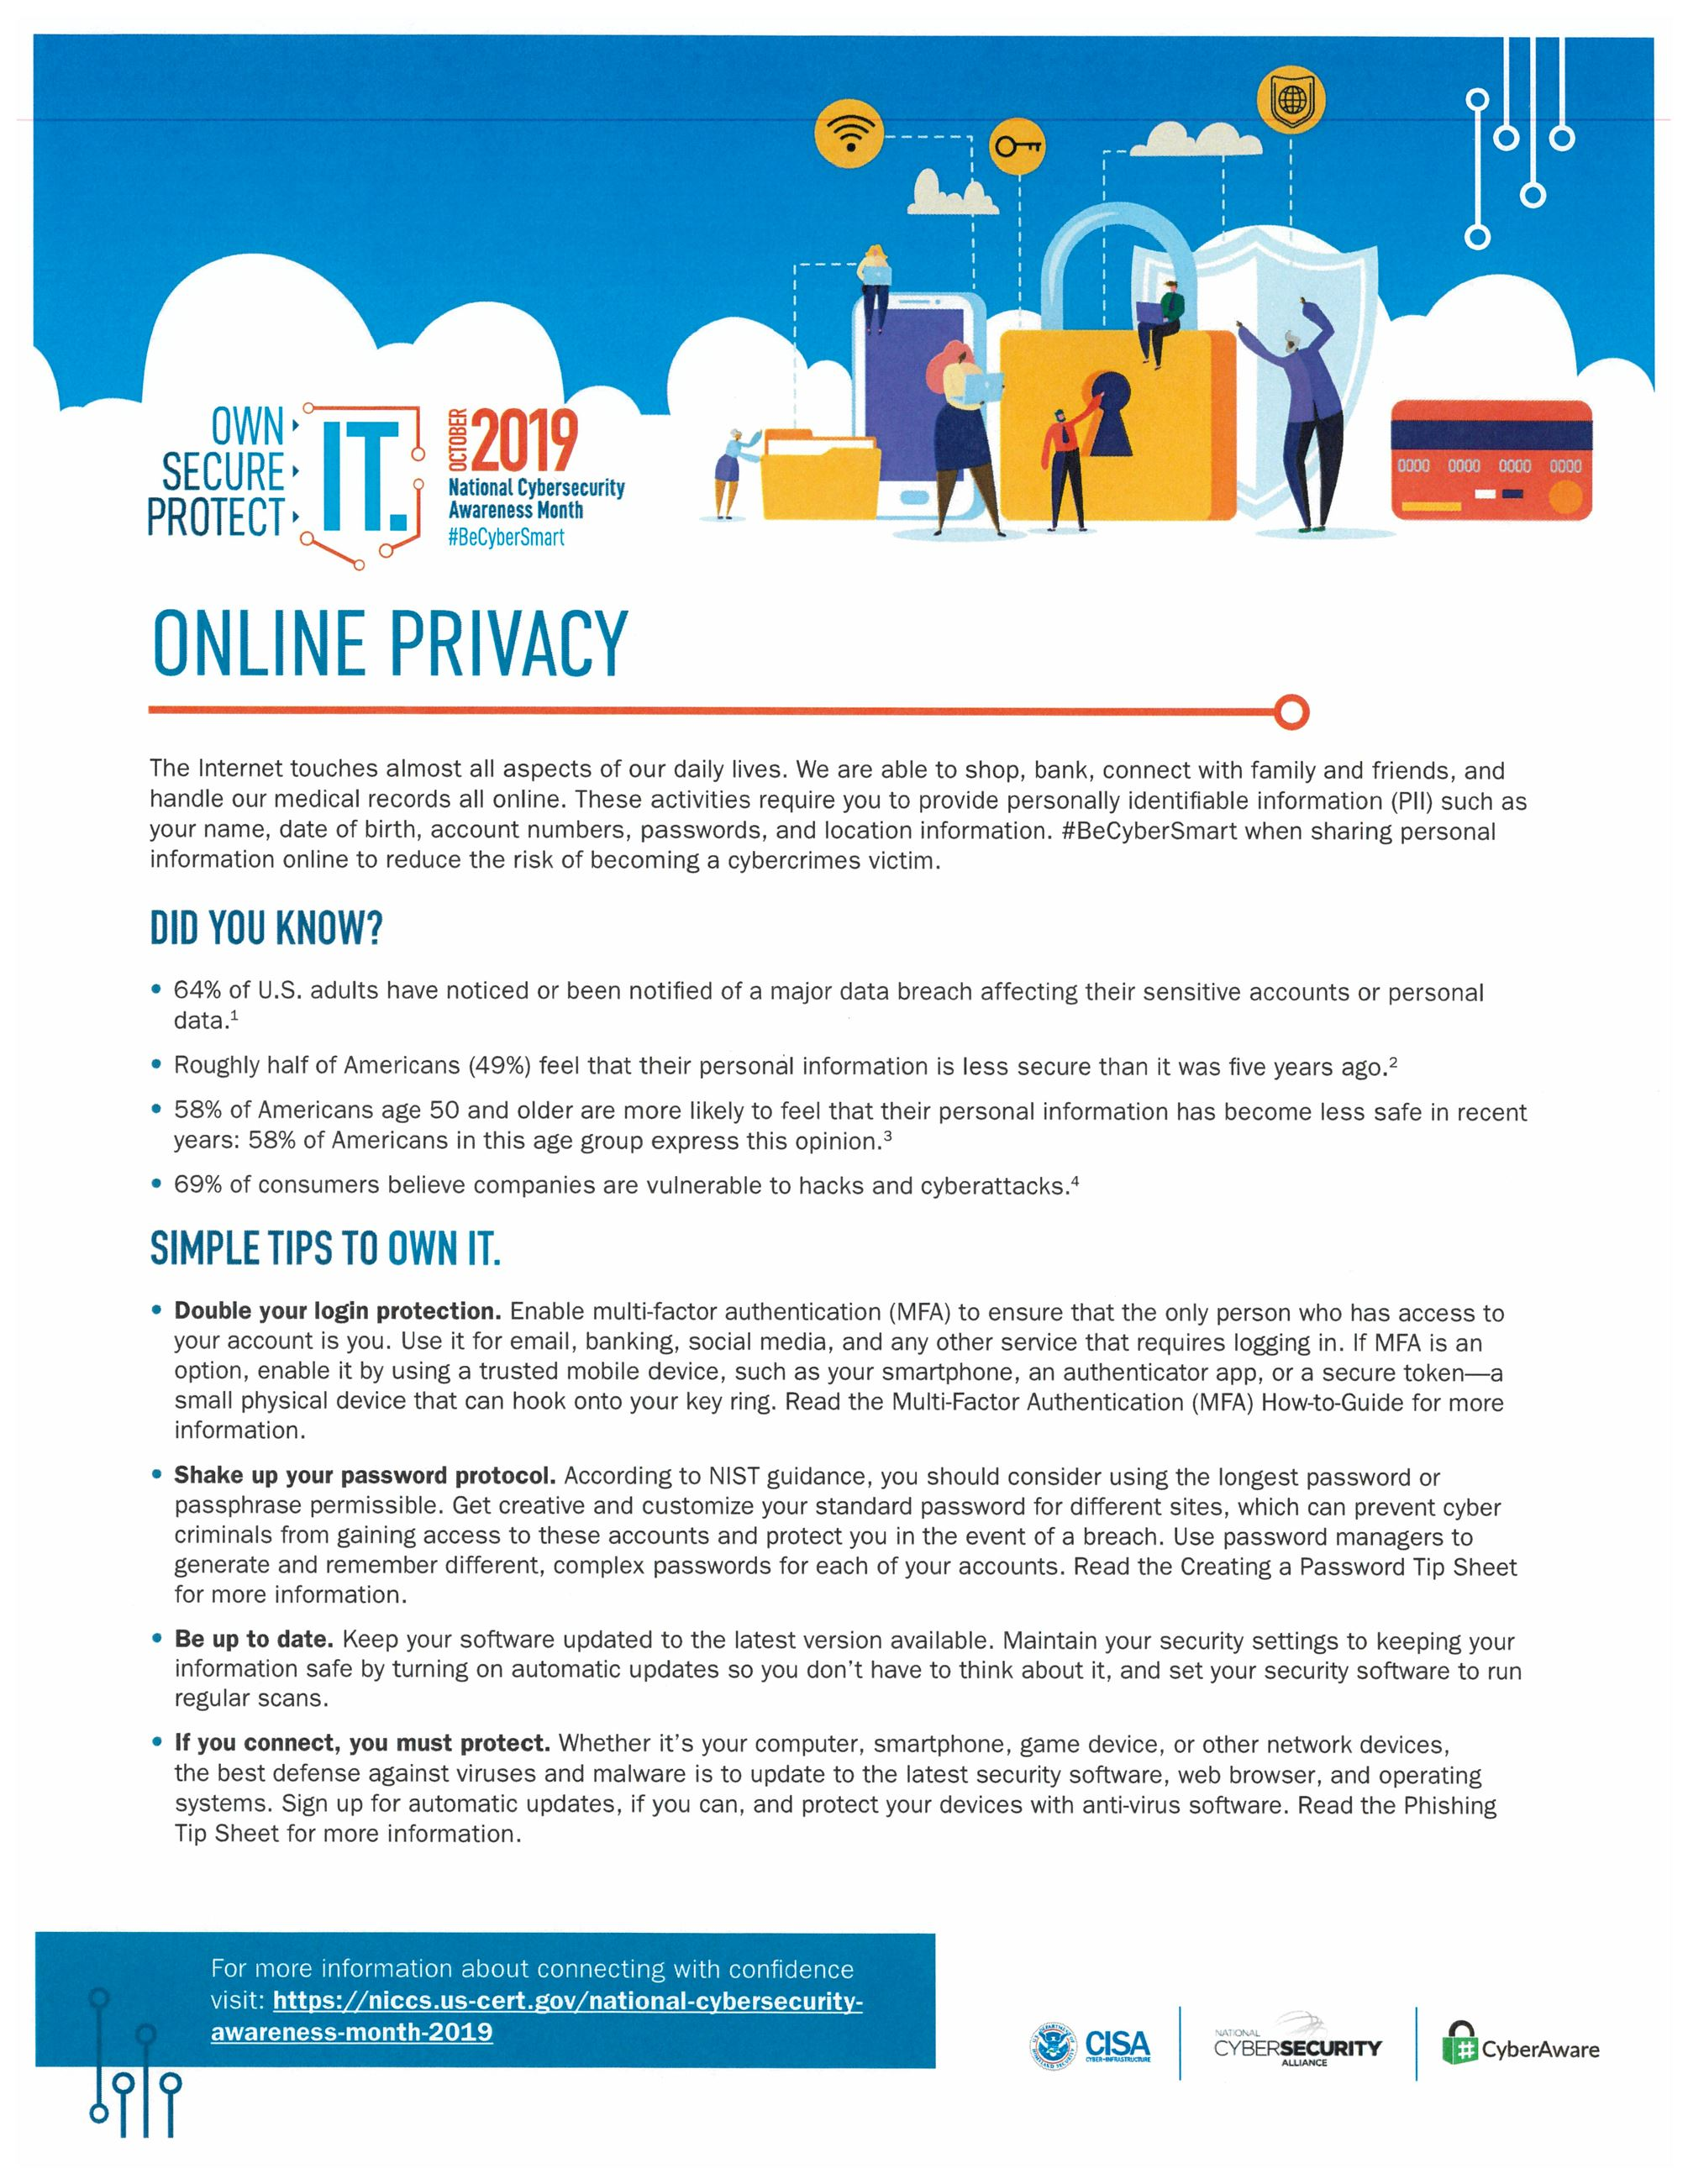 First page of online privacy training material